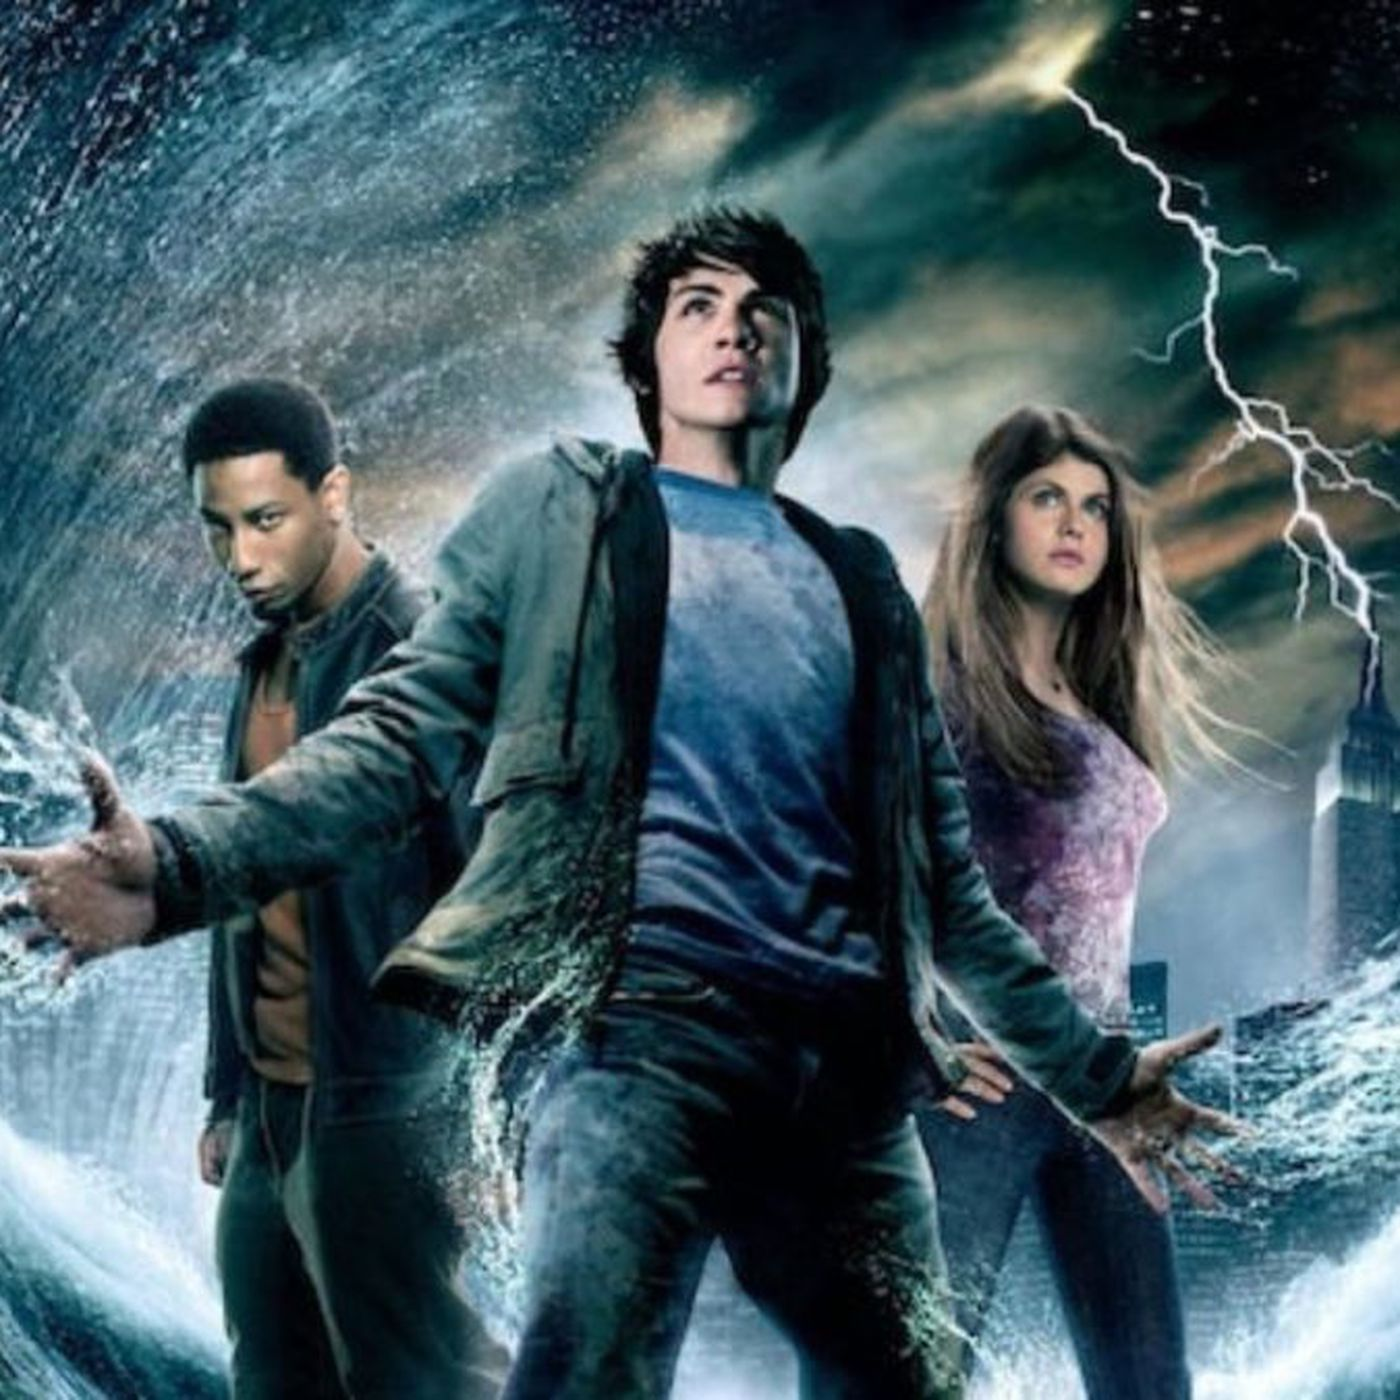 watch percy jackson movie online free no download